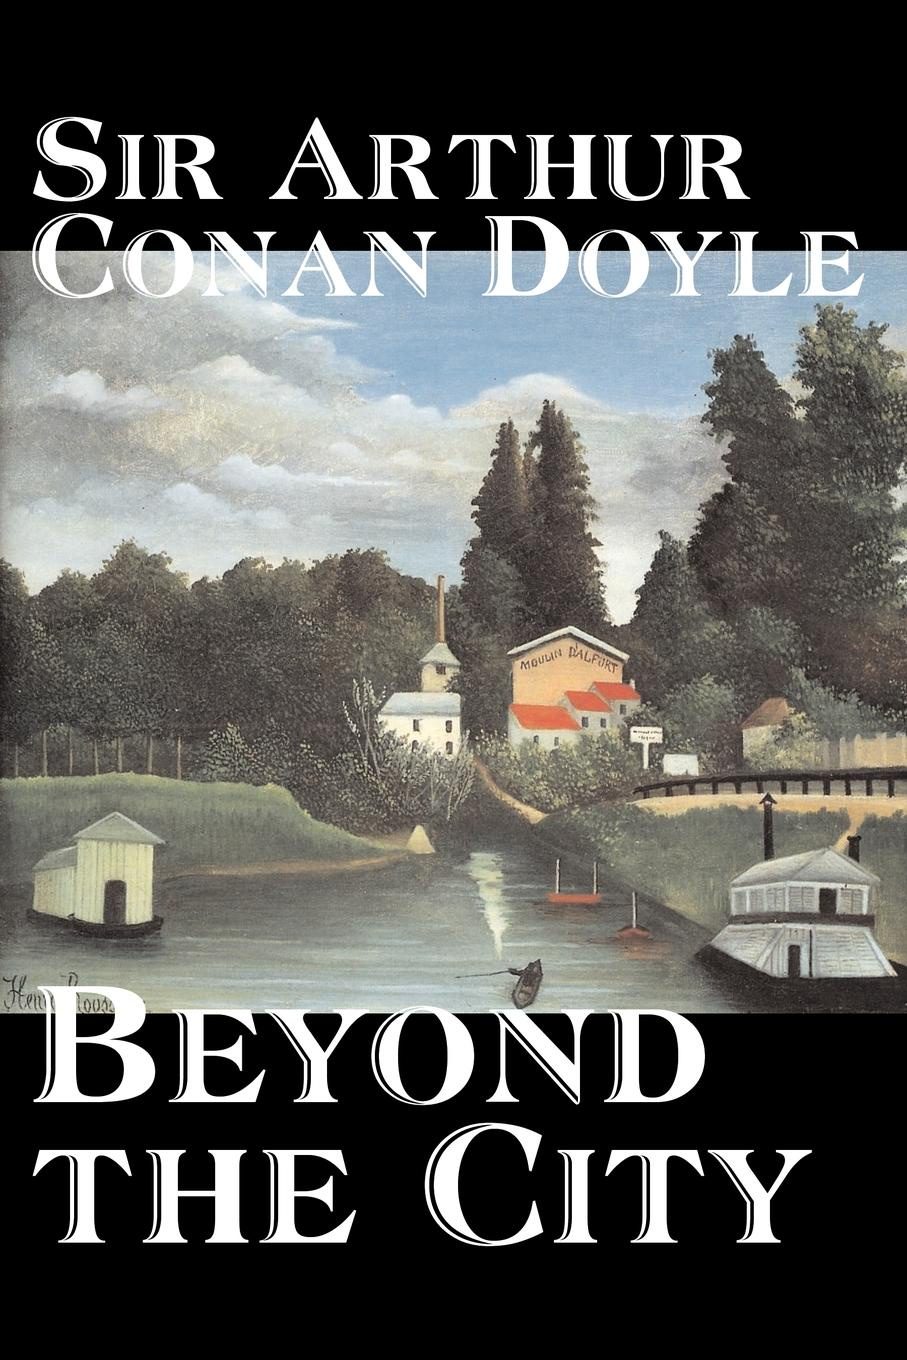 Doyle Arthur Conan Beyond the City by Arthur Conan Doyle, Fiction, Mystery & Detective, Historical, Action & Adventure arthur conan doyle beyond the city